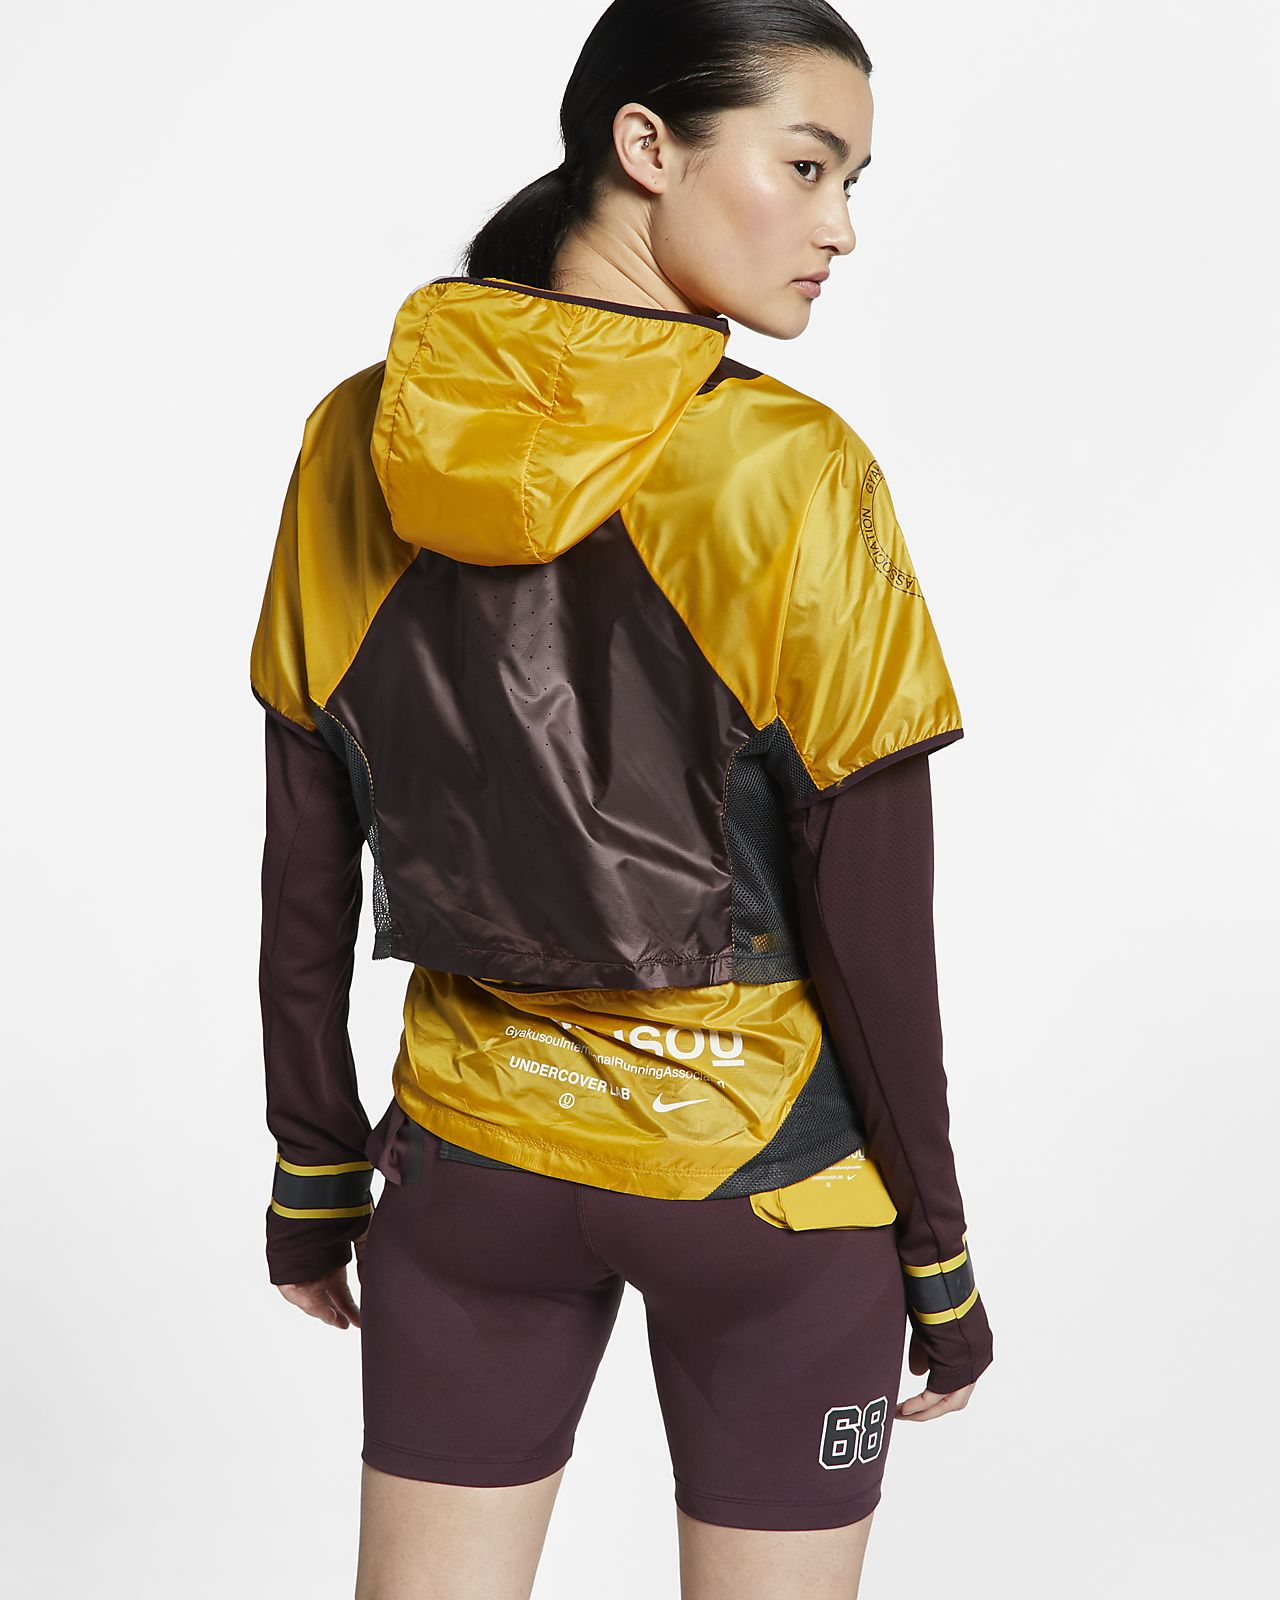 premium selection a2484 7184c Women s Jacket. Nike Gyakusou Transform